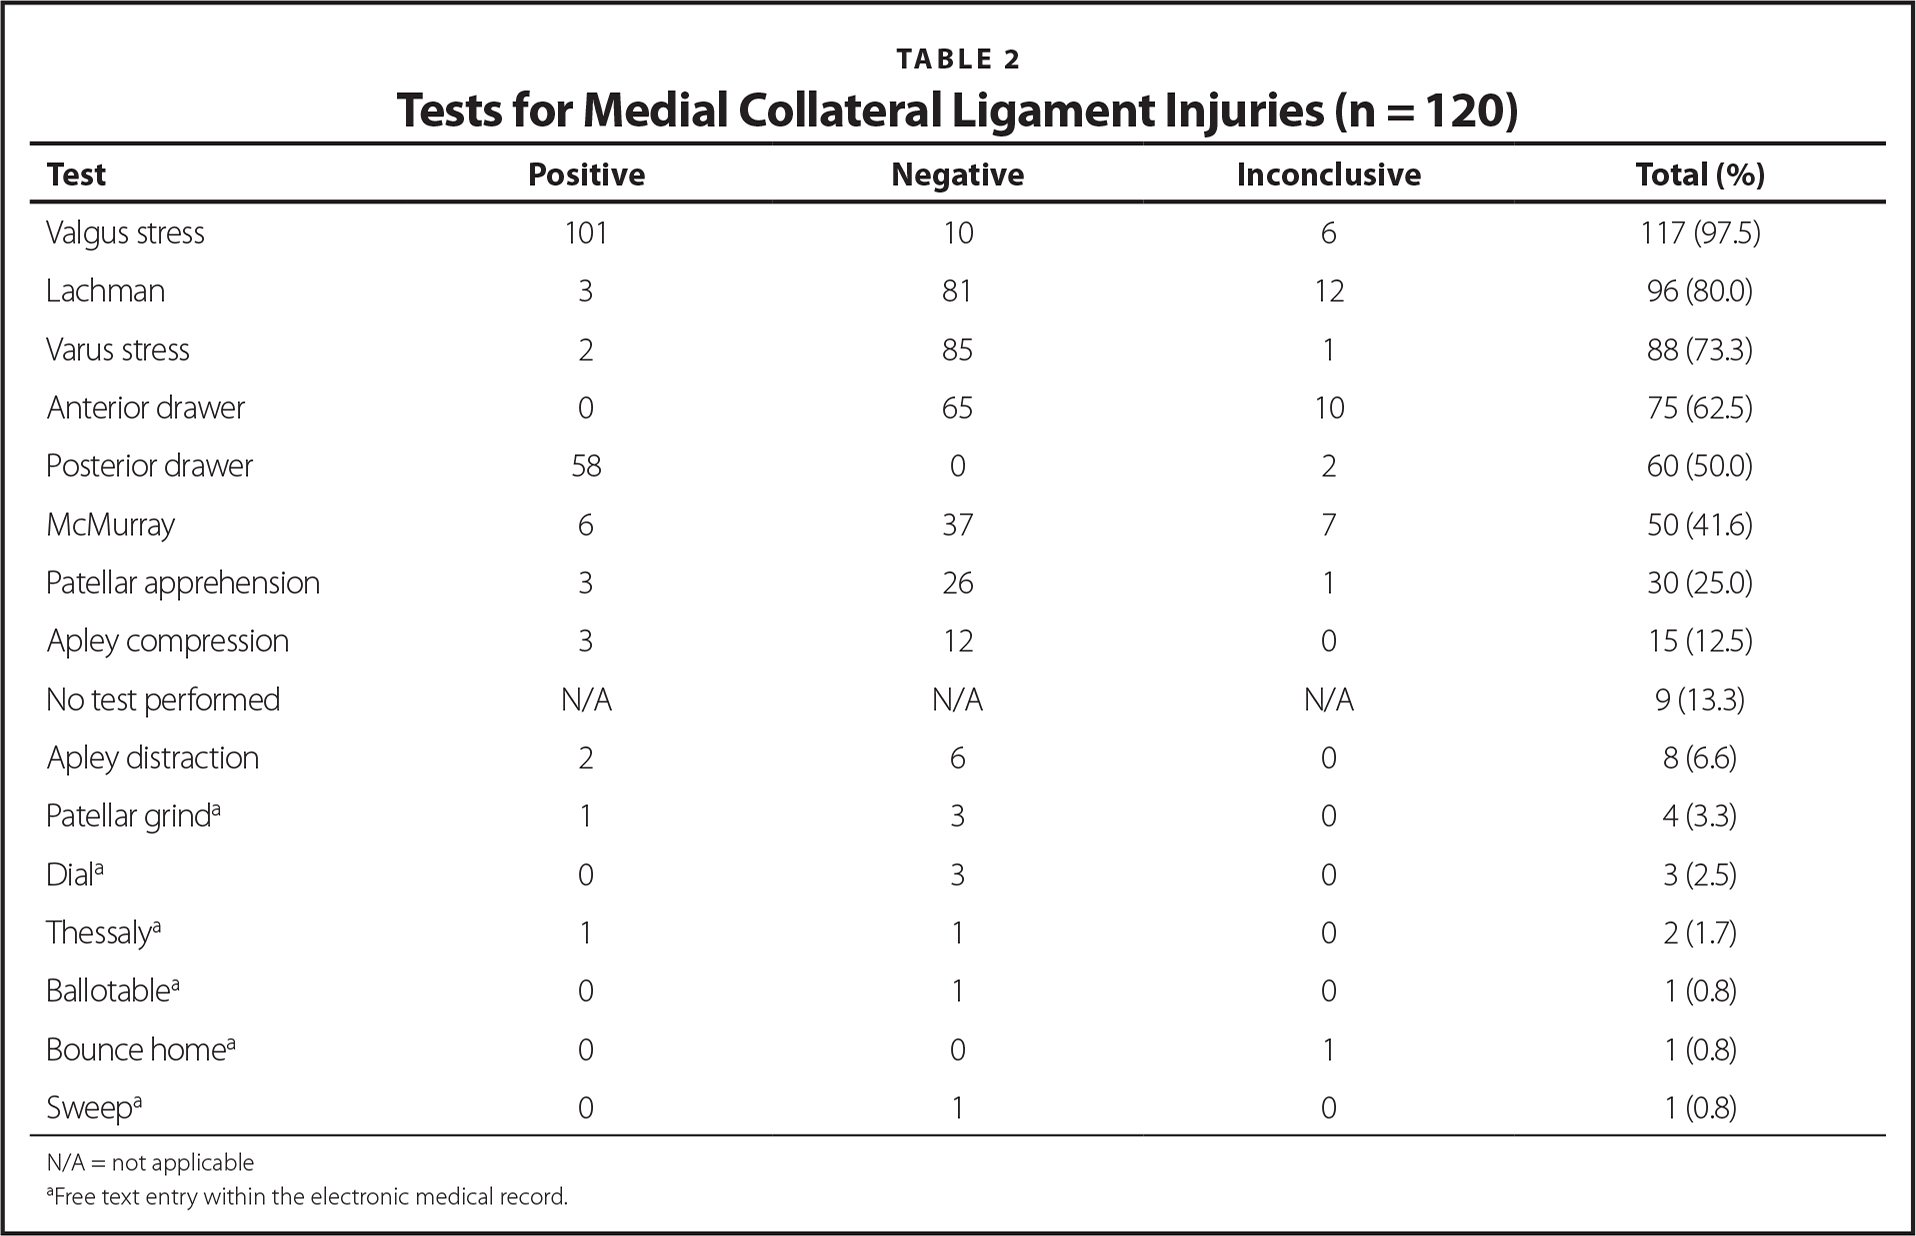 Tests for Medial Collateral Ligament Injuries (n = 120)